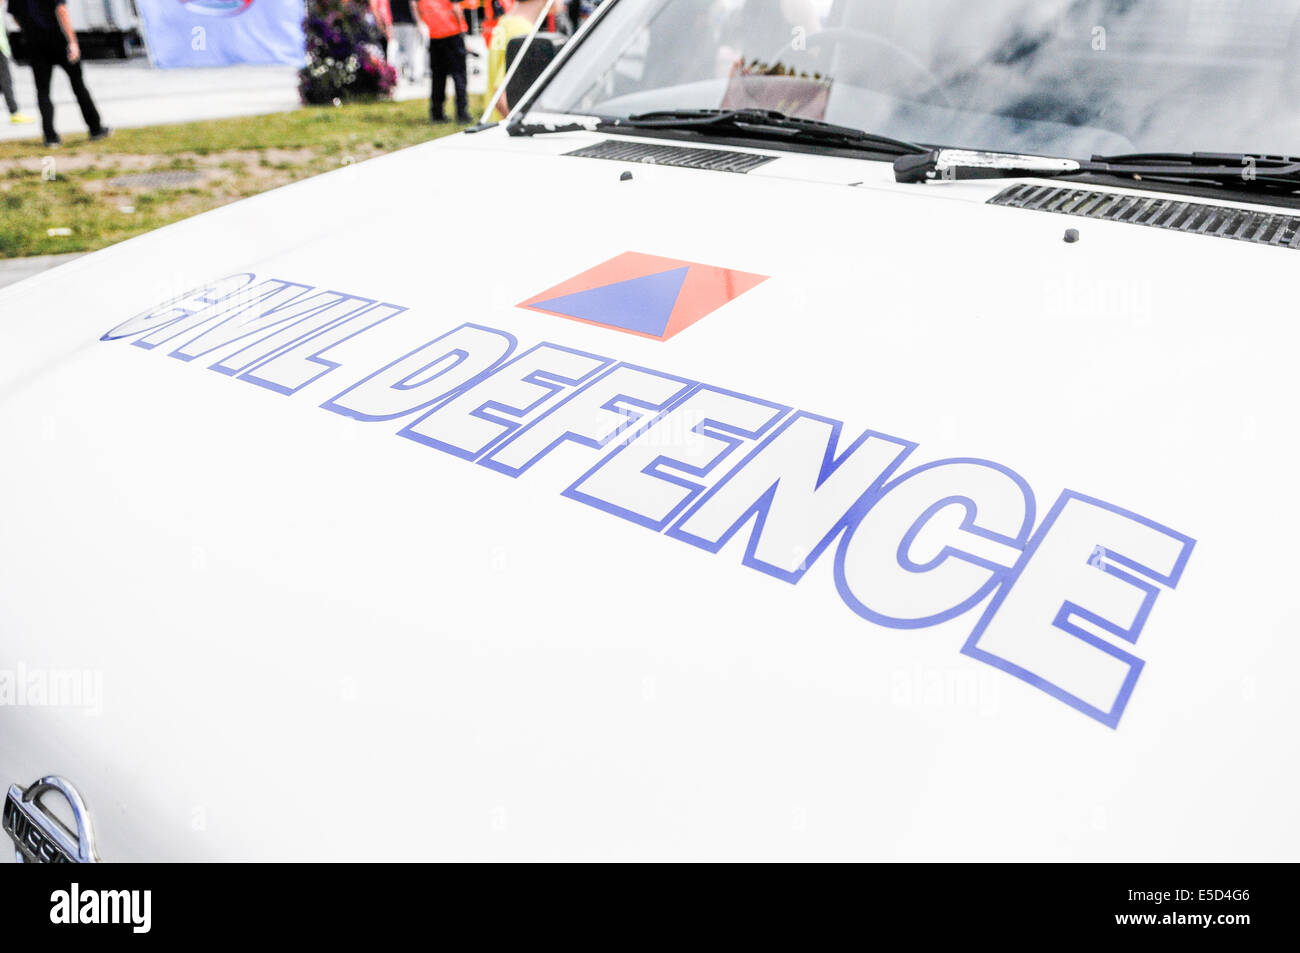 Irish Civil Defence 4x4 vehicle. The Civil Defence provide assistance to the regular emergency services when required. - Stock Image